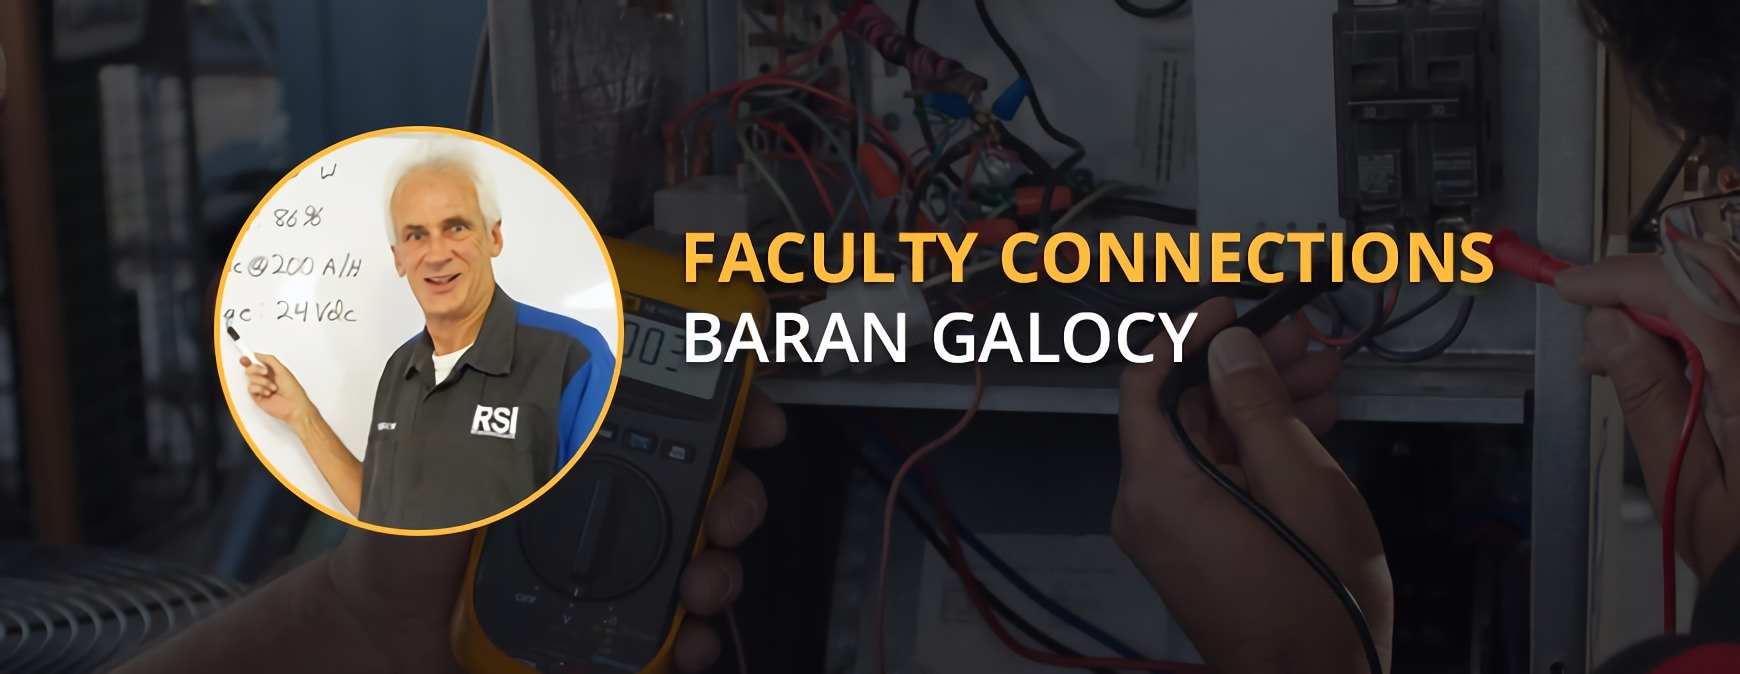 Baran Galocy cover photo